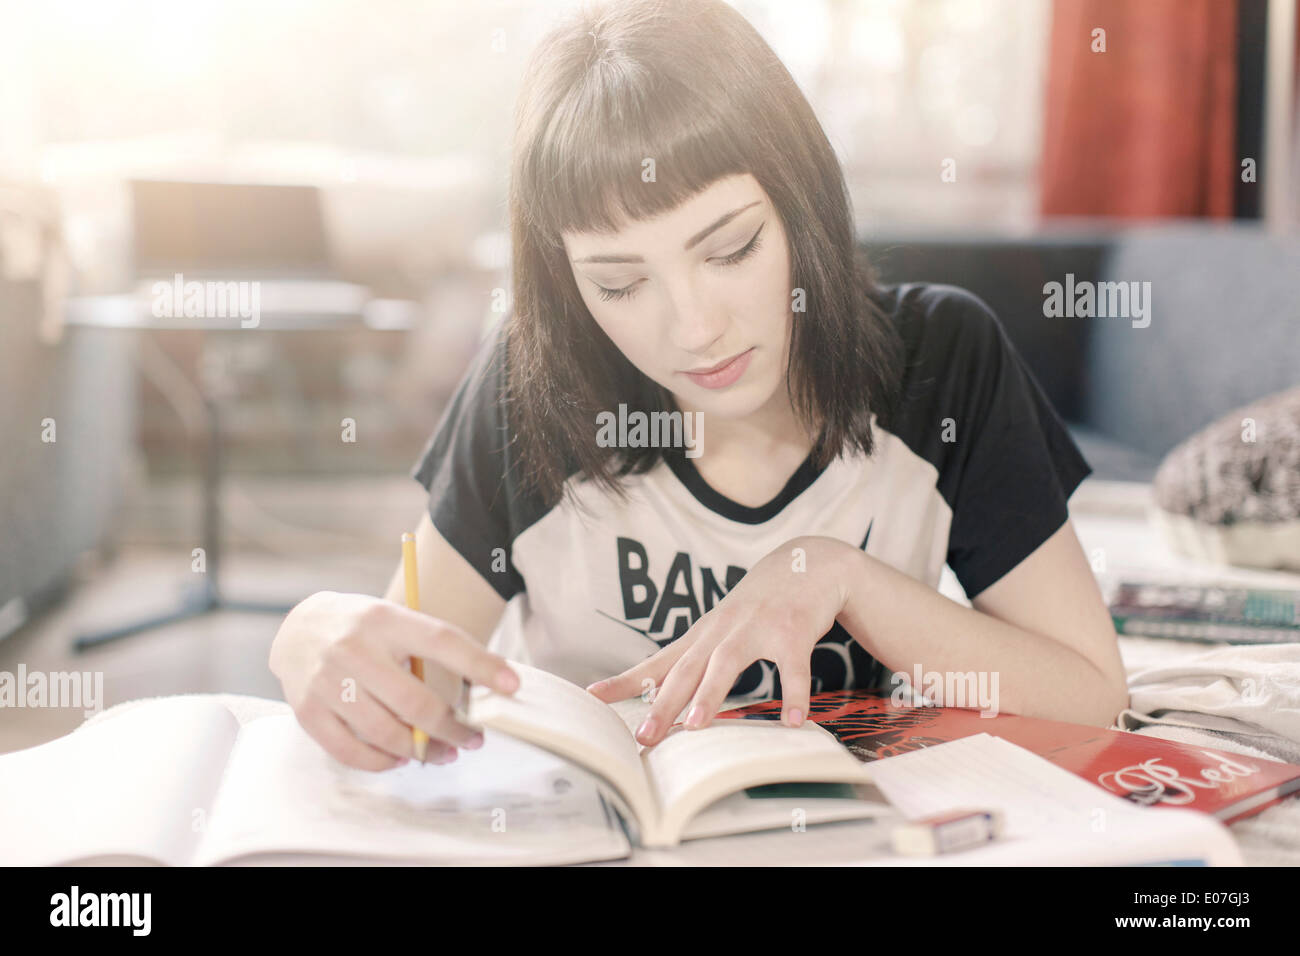 Young woman with brown hair reading in textbook - Stock Image